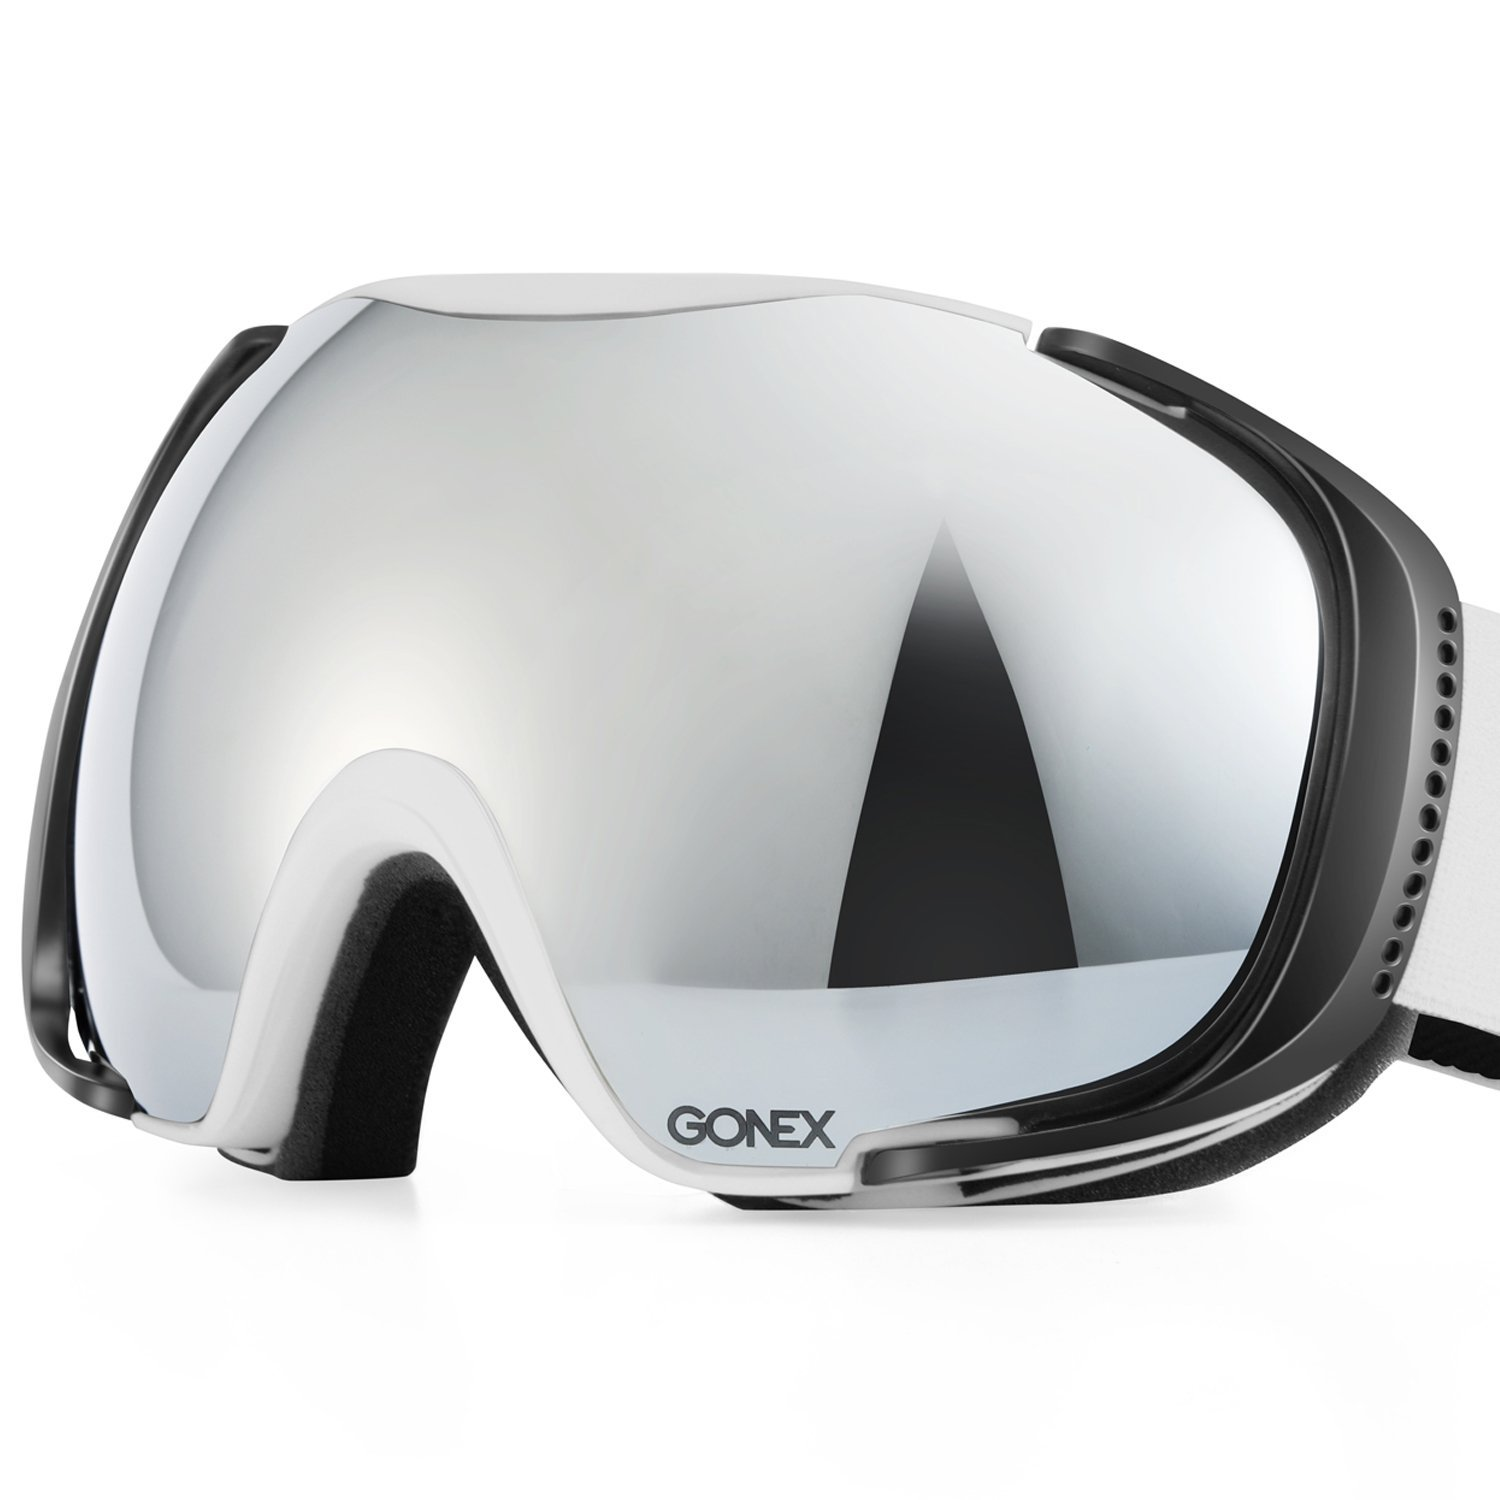 Gonex Polarized Snow Goggles with Oversized Double Spherical Lens For Men, Women and Youth – Available in 4 Colors